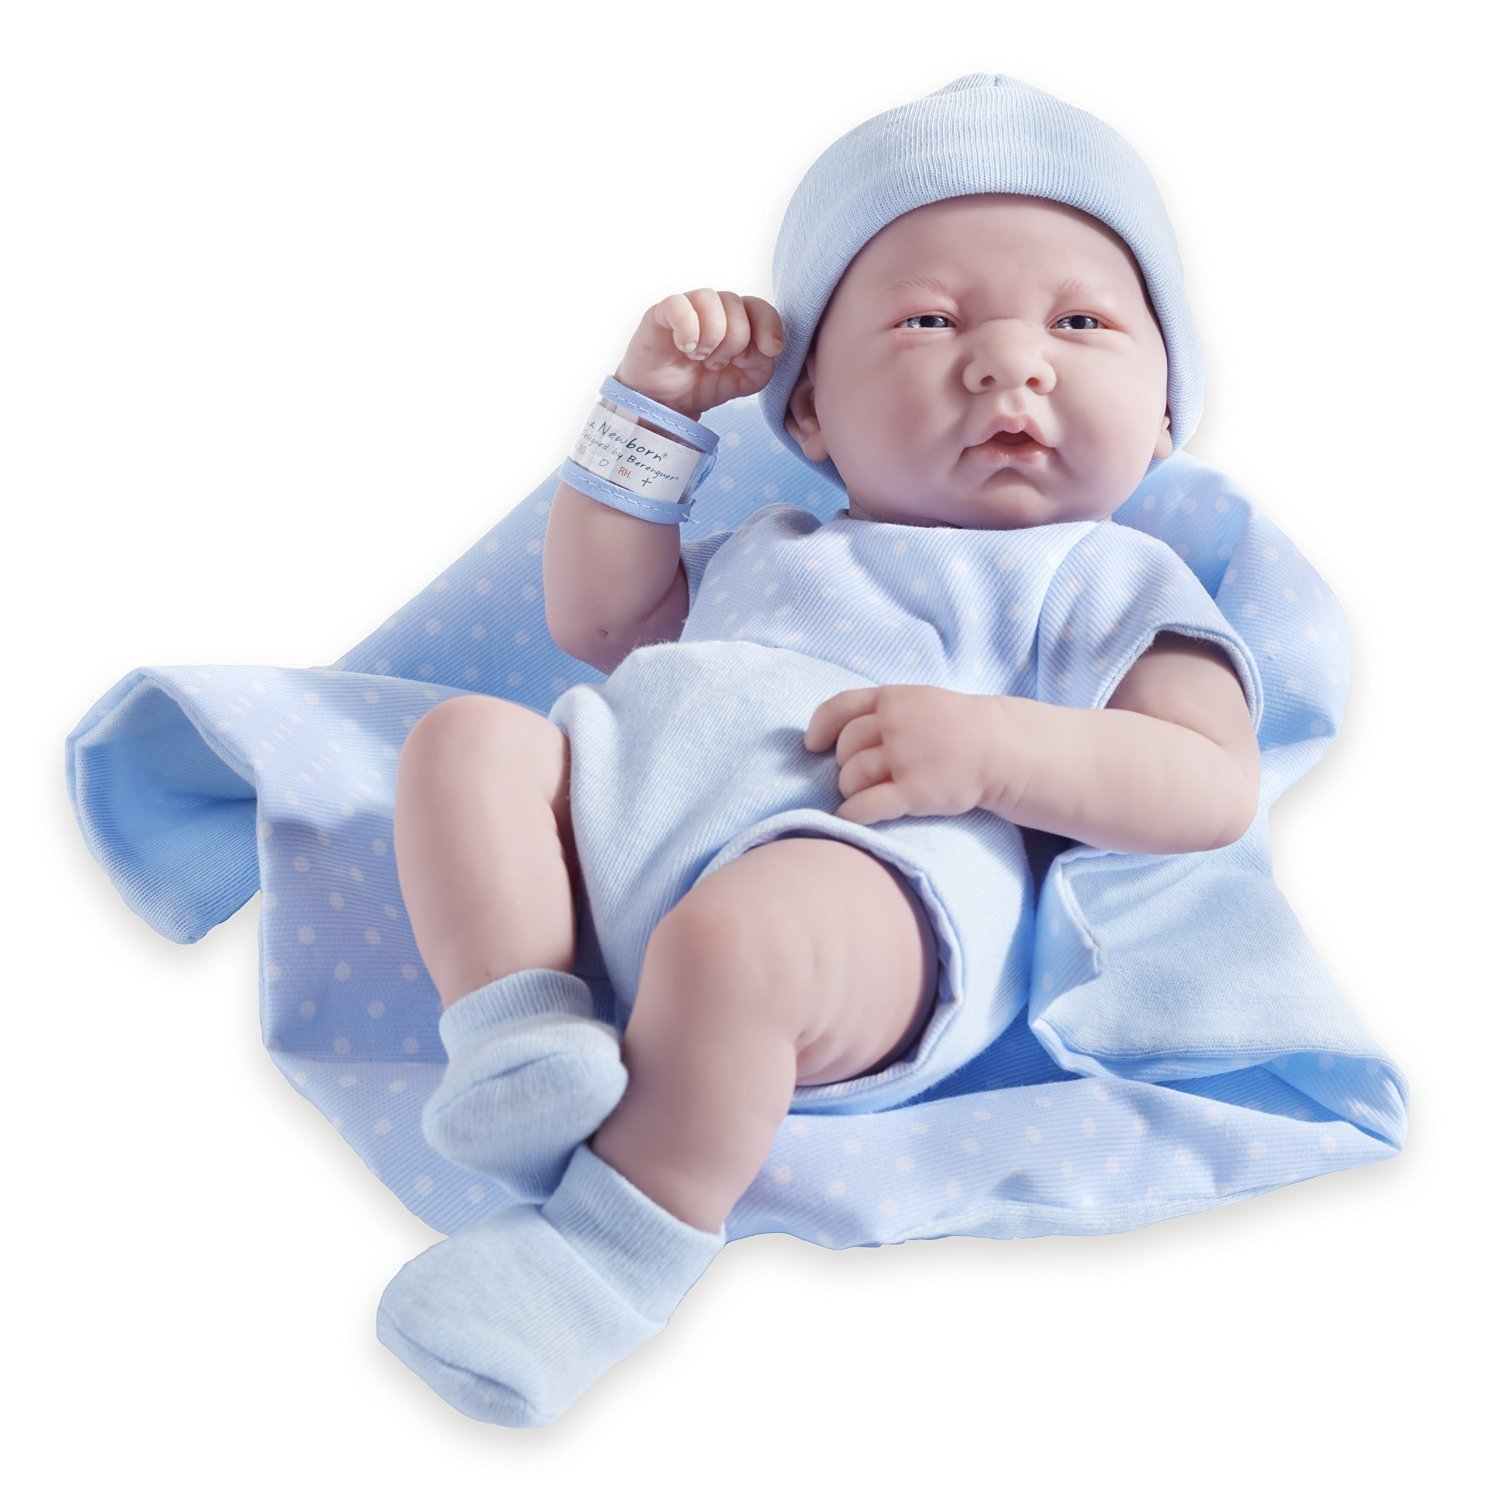 JC Toys Berenguer Boutique La Newborn Life-like Boutique Baby